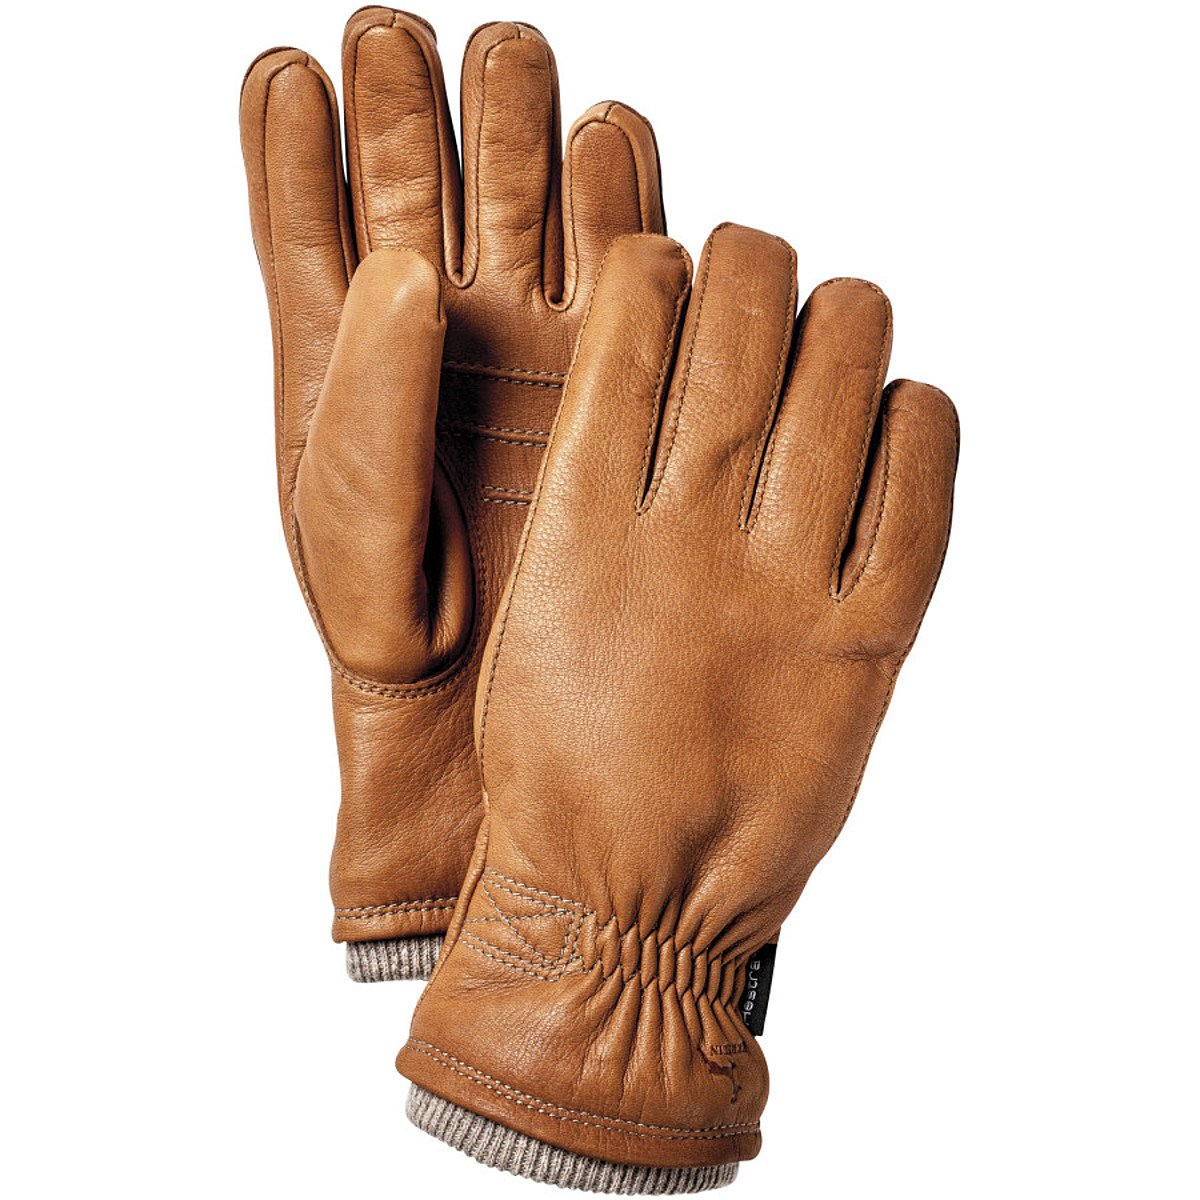 Hestra Deerskin Swisswool Rib Cuff Leather Driving Glove,Cork,11